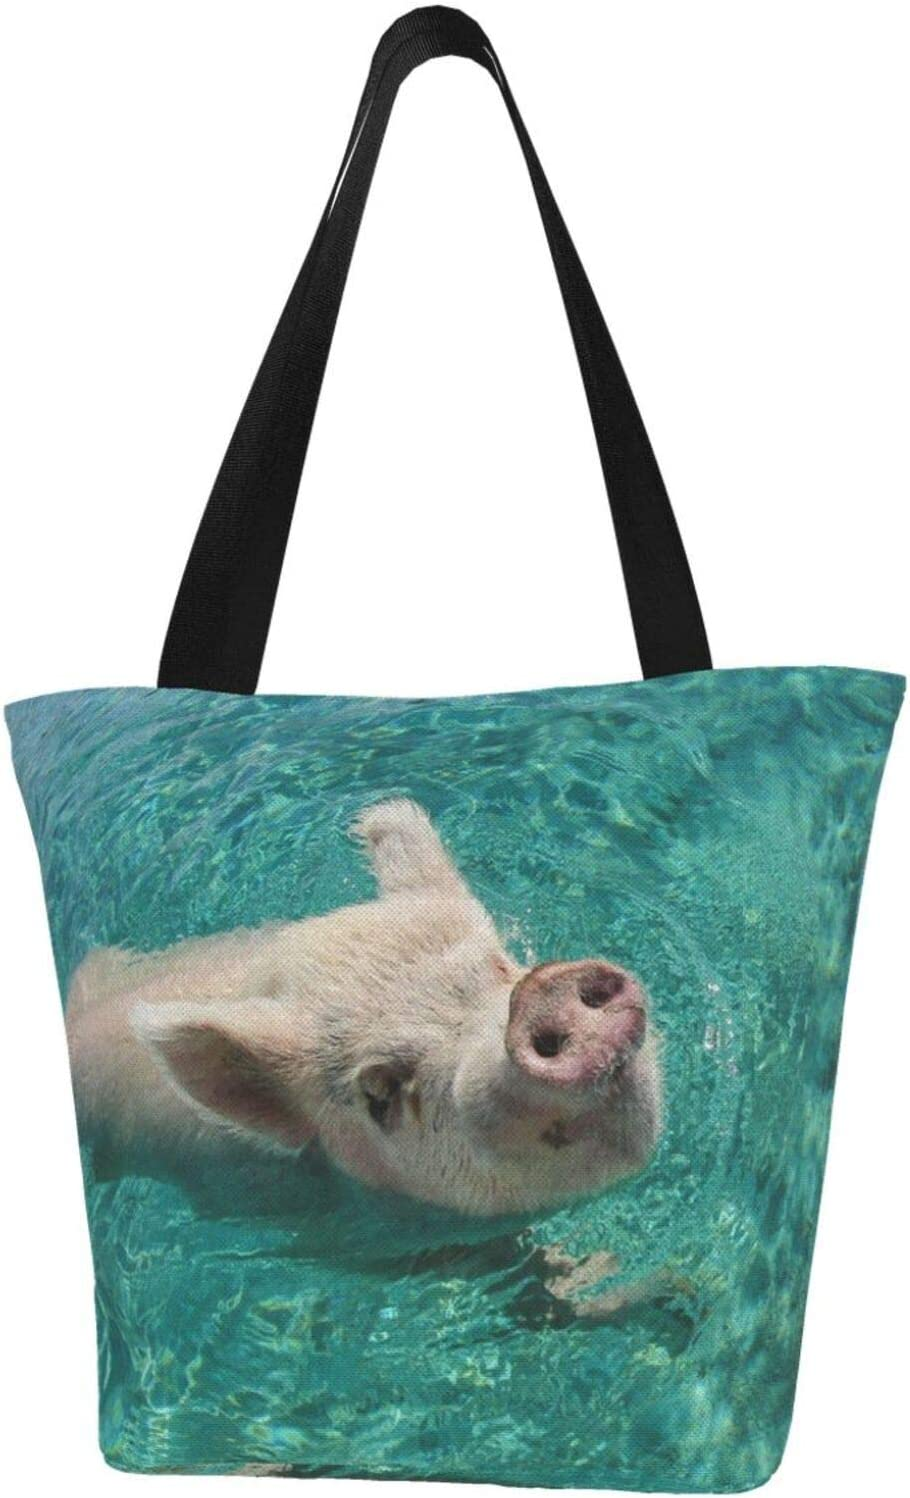 AKLID Swimming Pig Extra Large Water safety Trust f Bag Canvas Tote Resistant